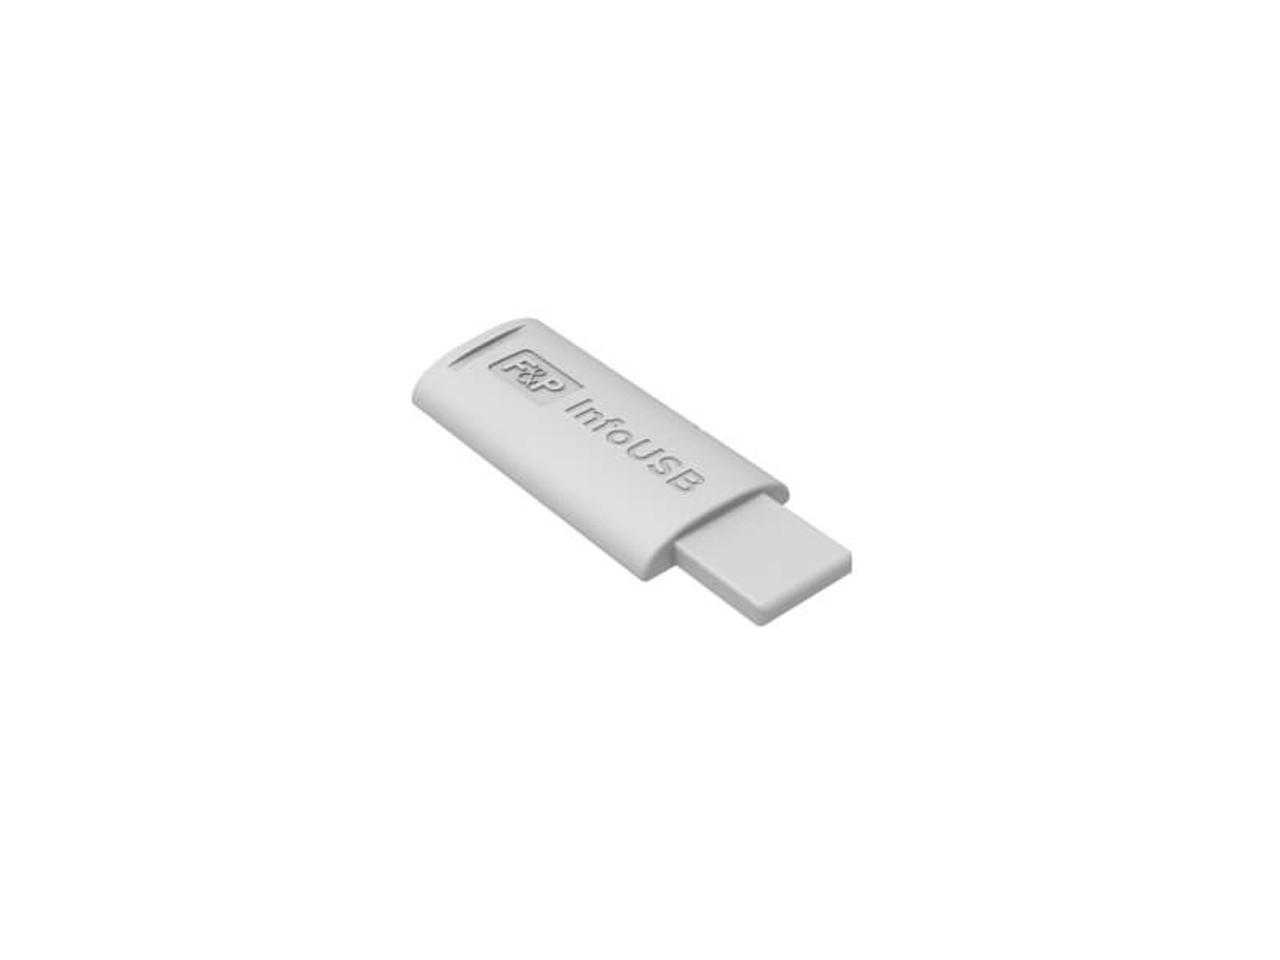 Fisher and Paykel healthcare InfoSmart USB